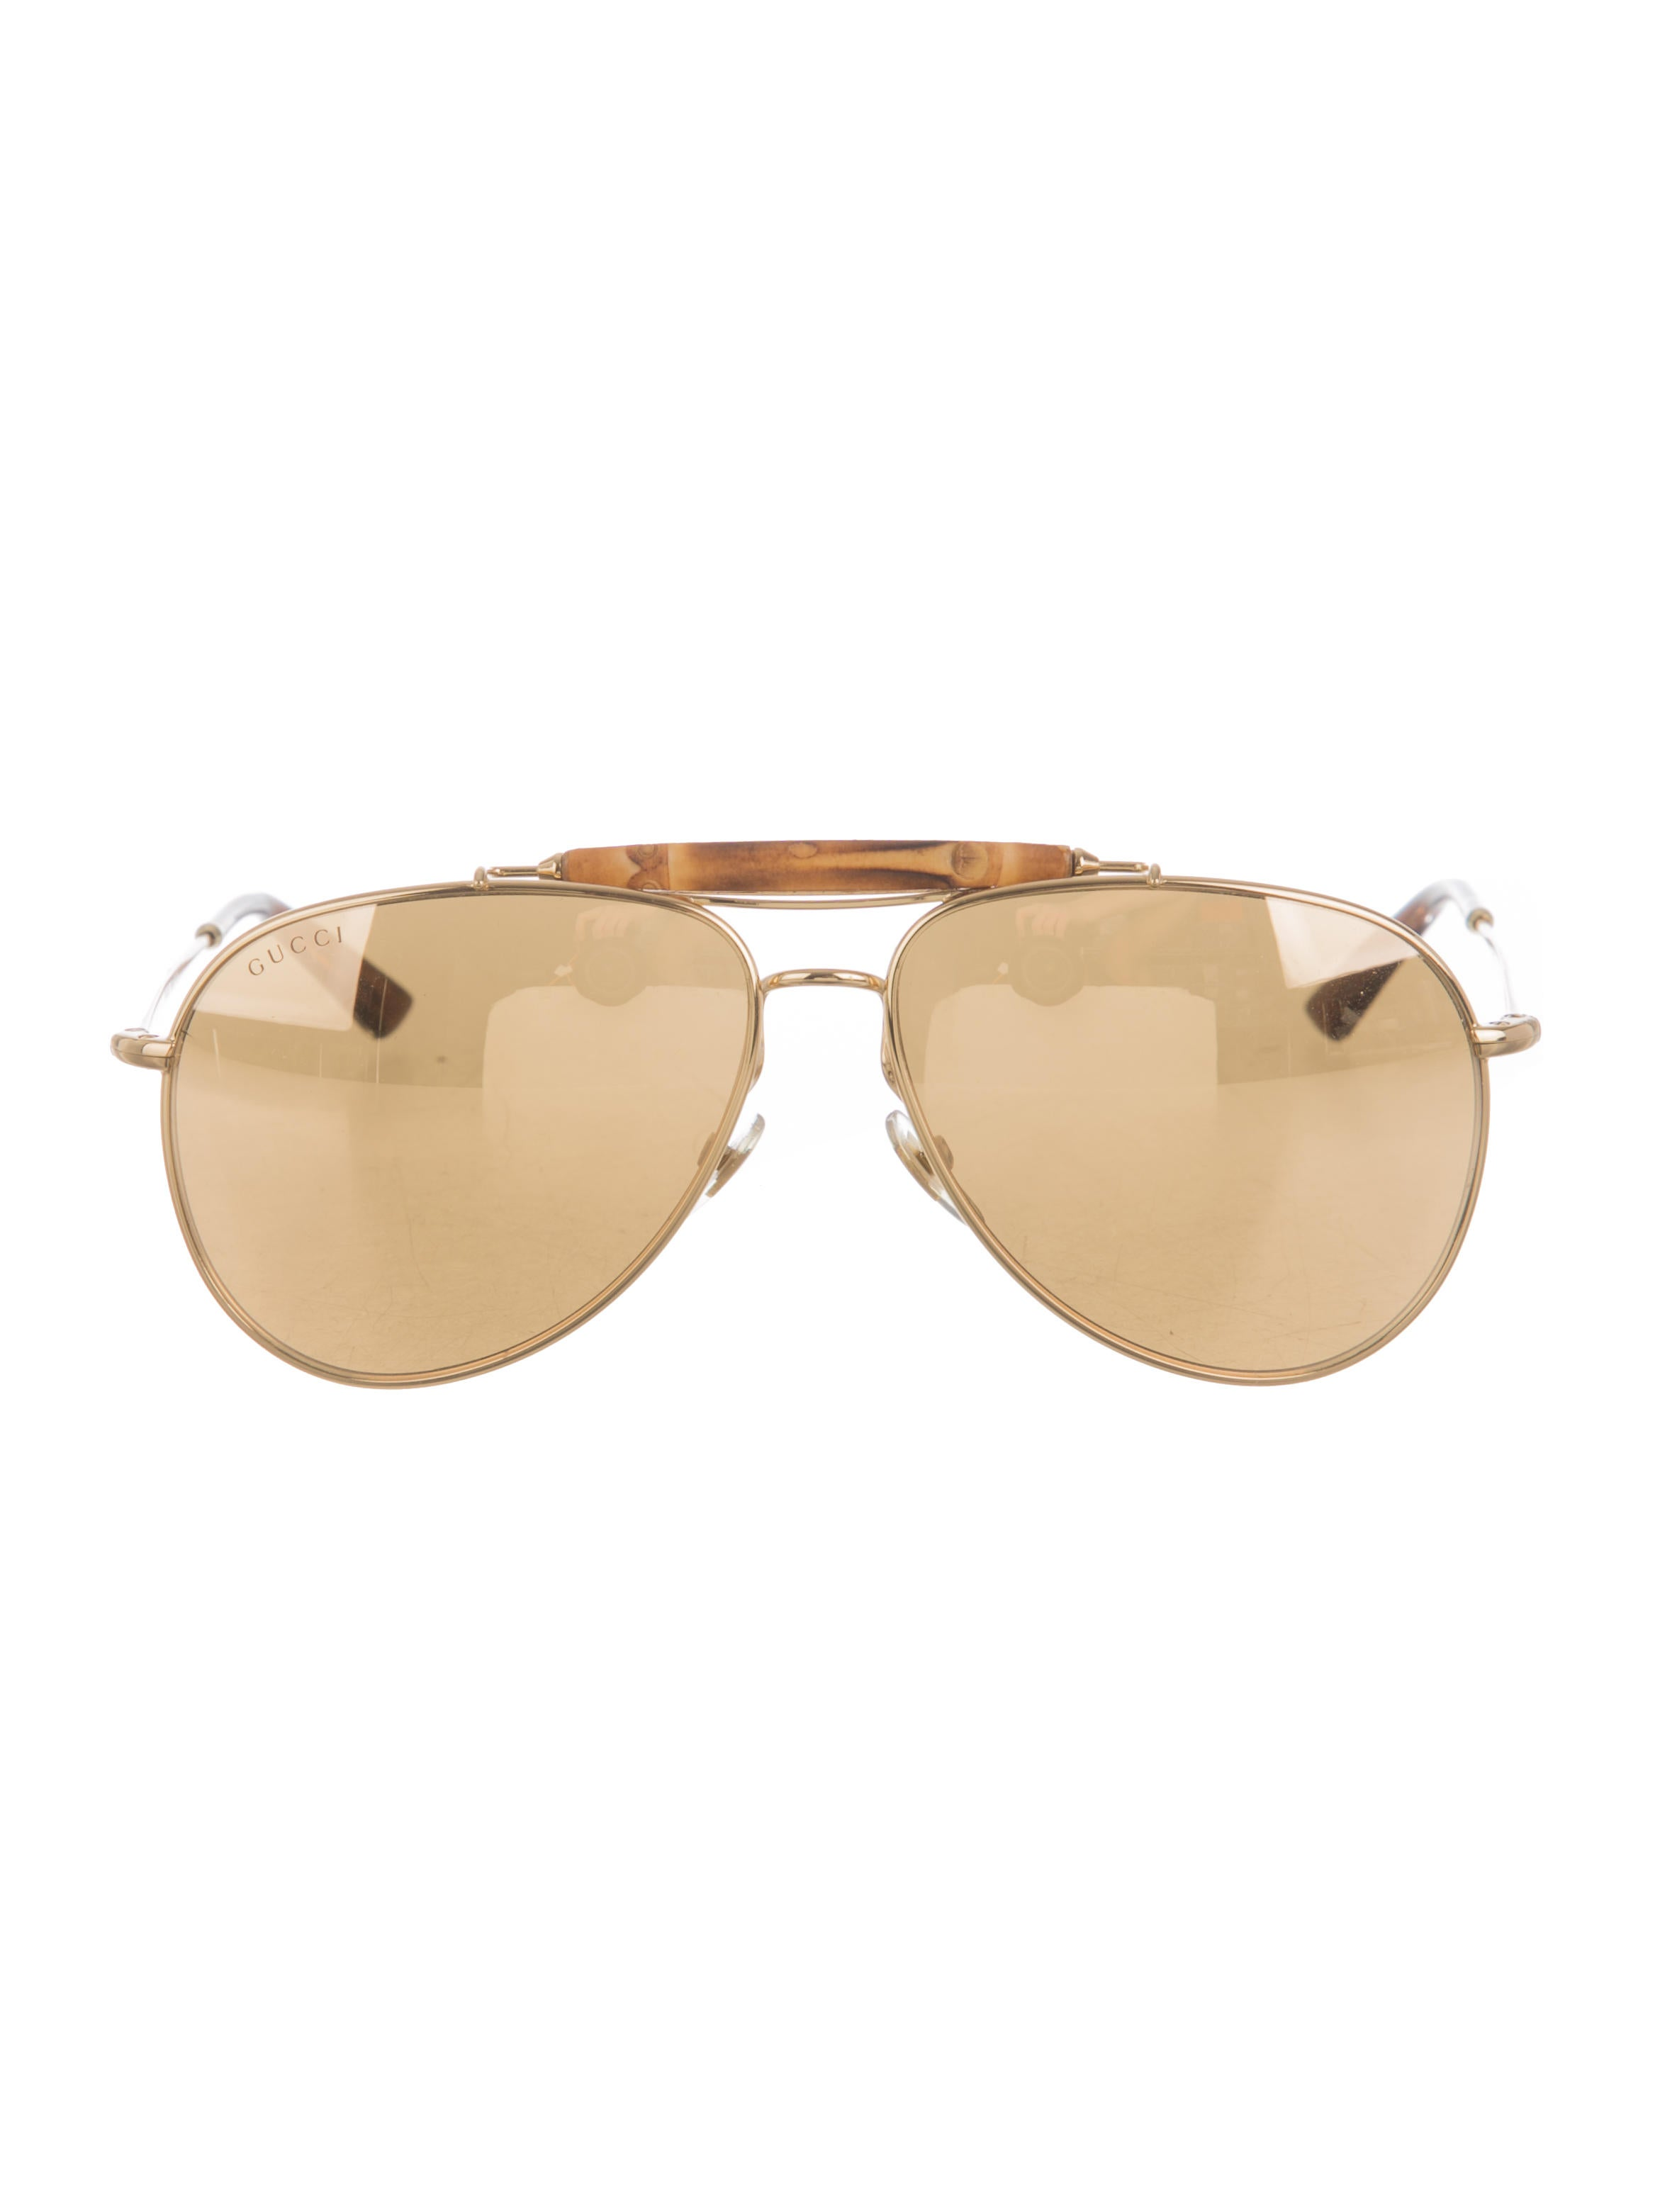 04e026e0d6 Gucci 24k Gold-Plated Aviator Sunglasses - Accessories - GUC123638 ...